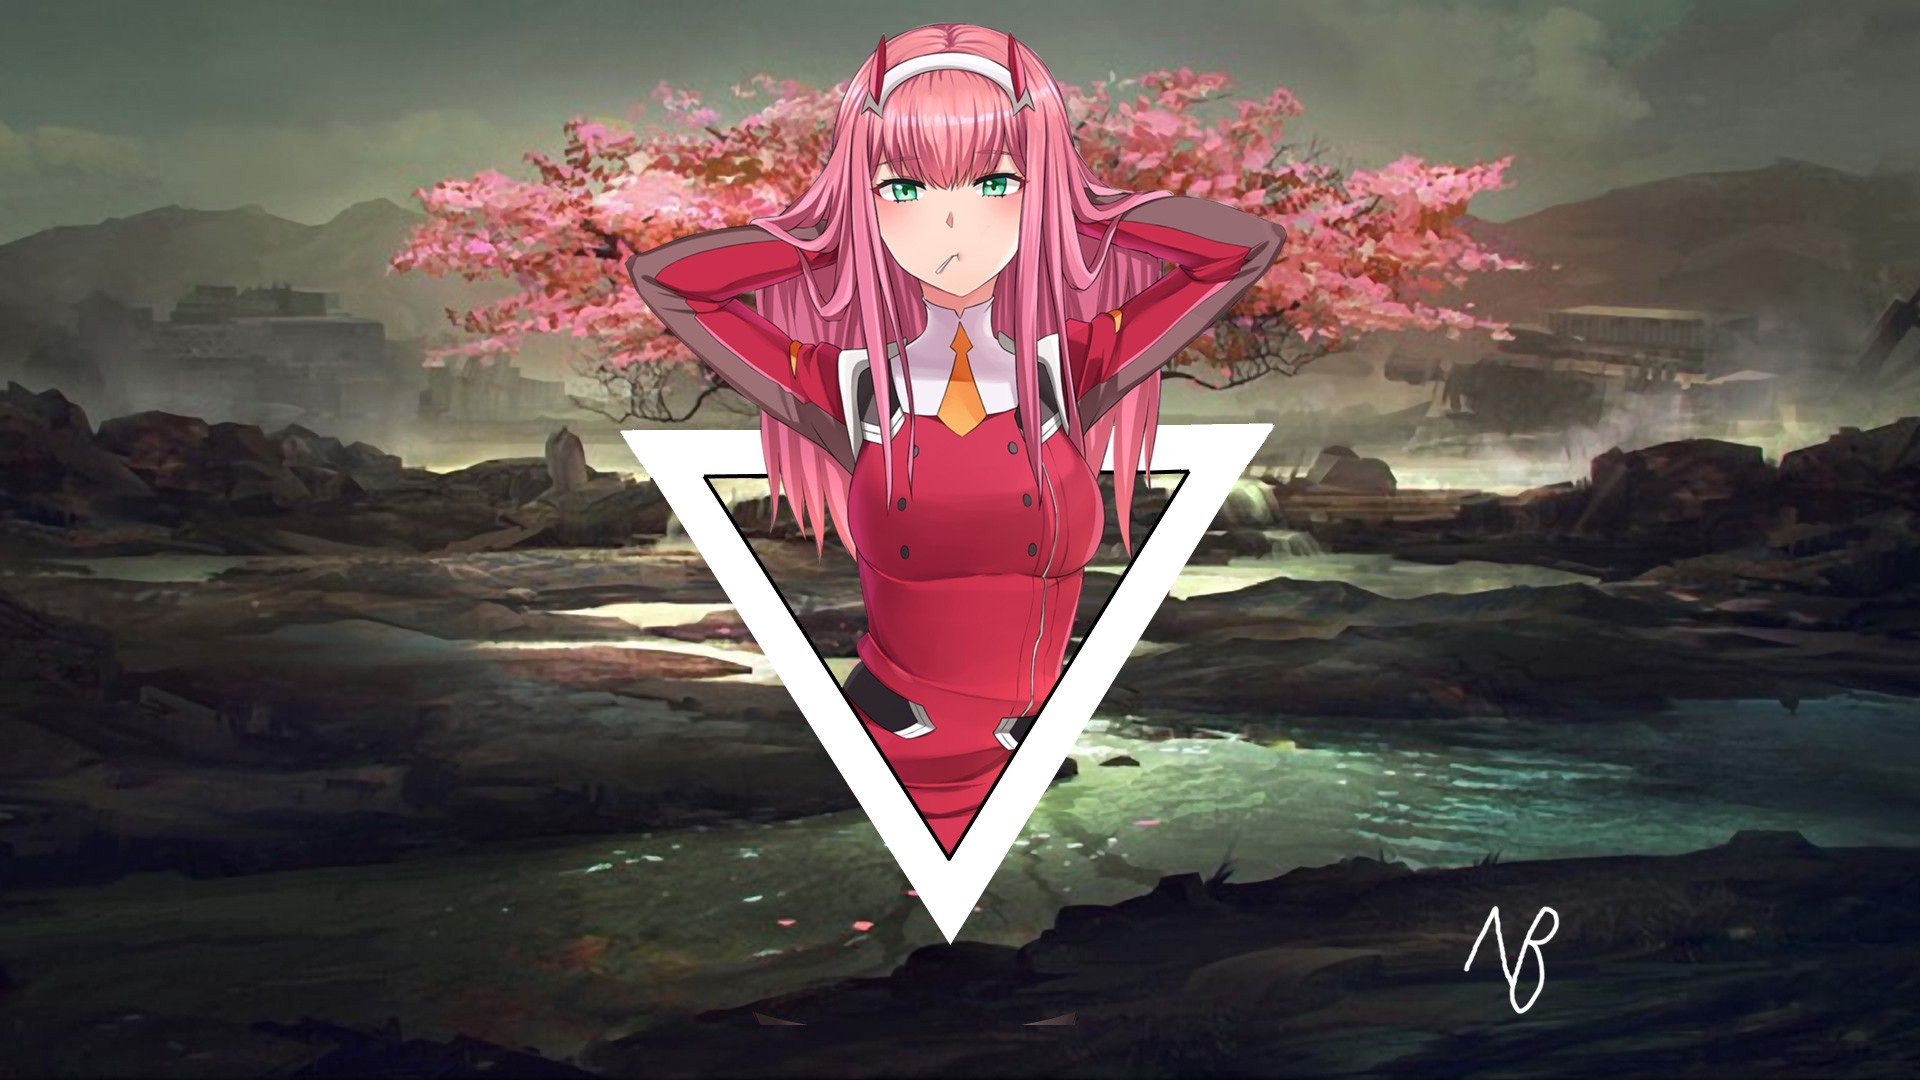 Zero Two Wallpapers Hd Kolpaper Awesome Free Hd Wallpapers Posts must be related to darling in the franxx. zero two wallpapers hd kolpaper